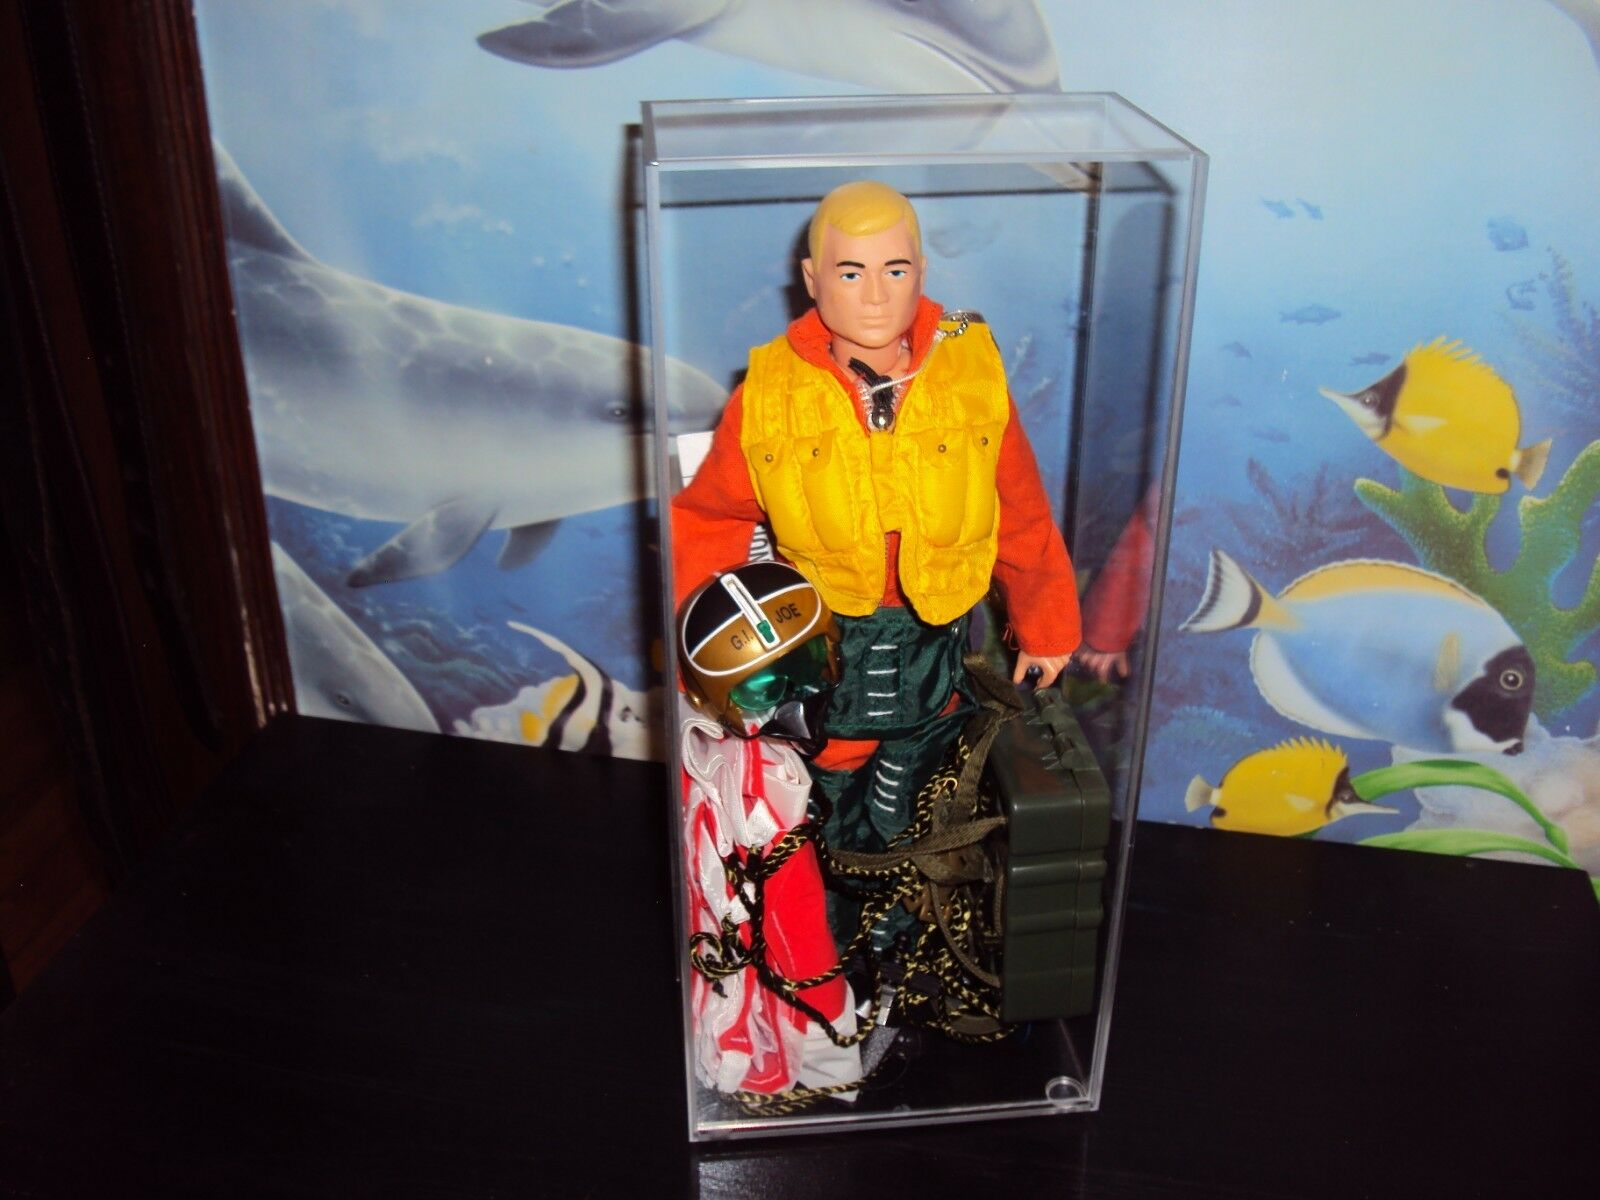 GI JOE 12INCH ACRYLIC CASES THIS SALE IS FOR FOR FOR ACRYLIC CASES ONLY NO TOYS. 49e47e